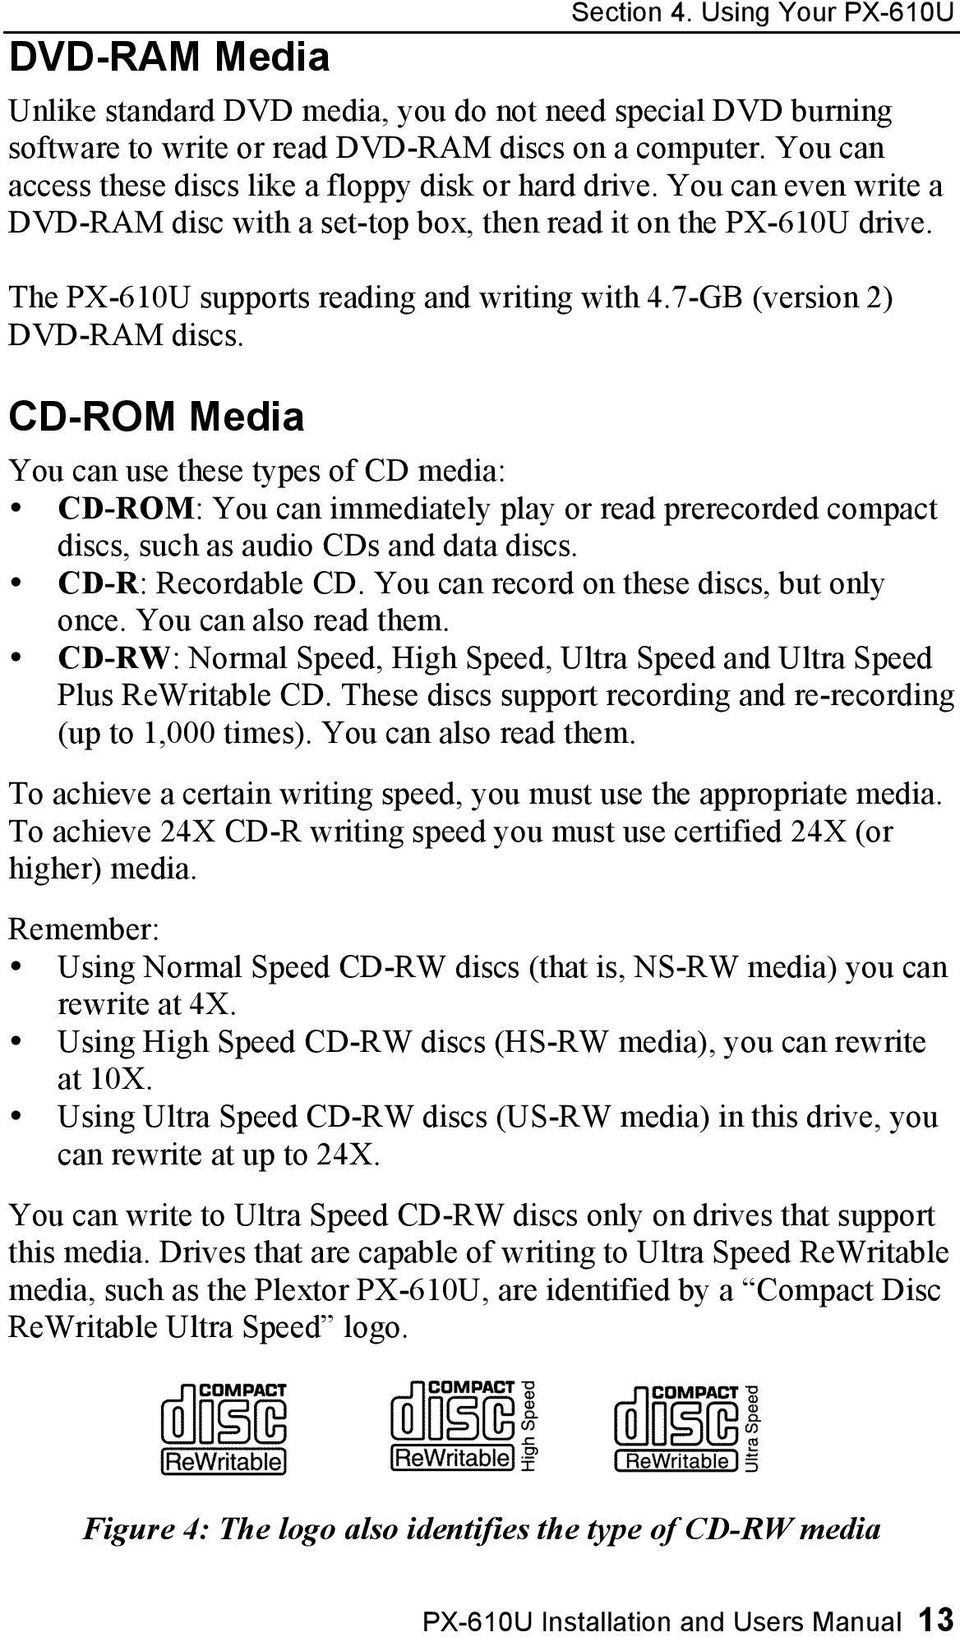 7-GB (version 2) DVD-RAM discs. CD-ROM Media You can use these types of CD media: CD-ROM: You can immediately play or read prerecorded compact discs, such as audio CDs and data discs.